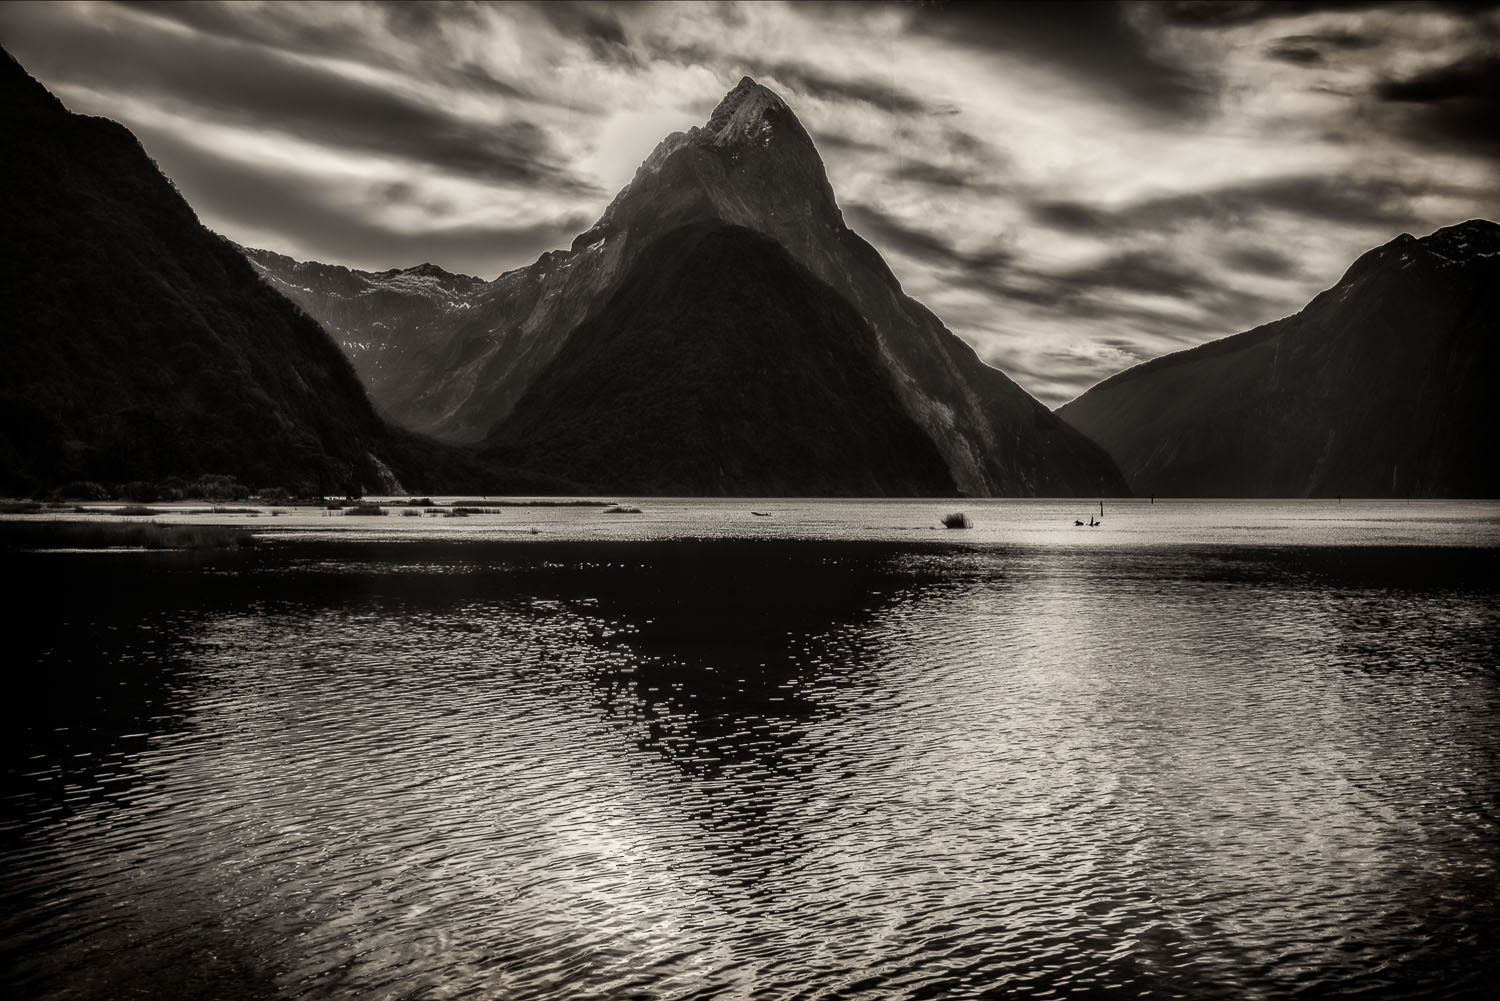 Serenity, Milford Sound, New Zealand